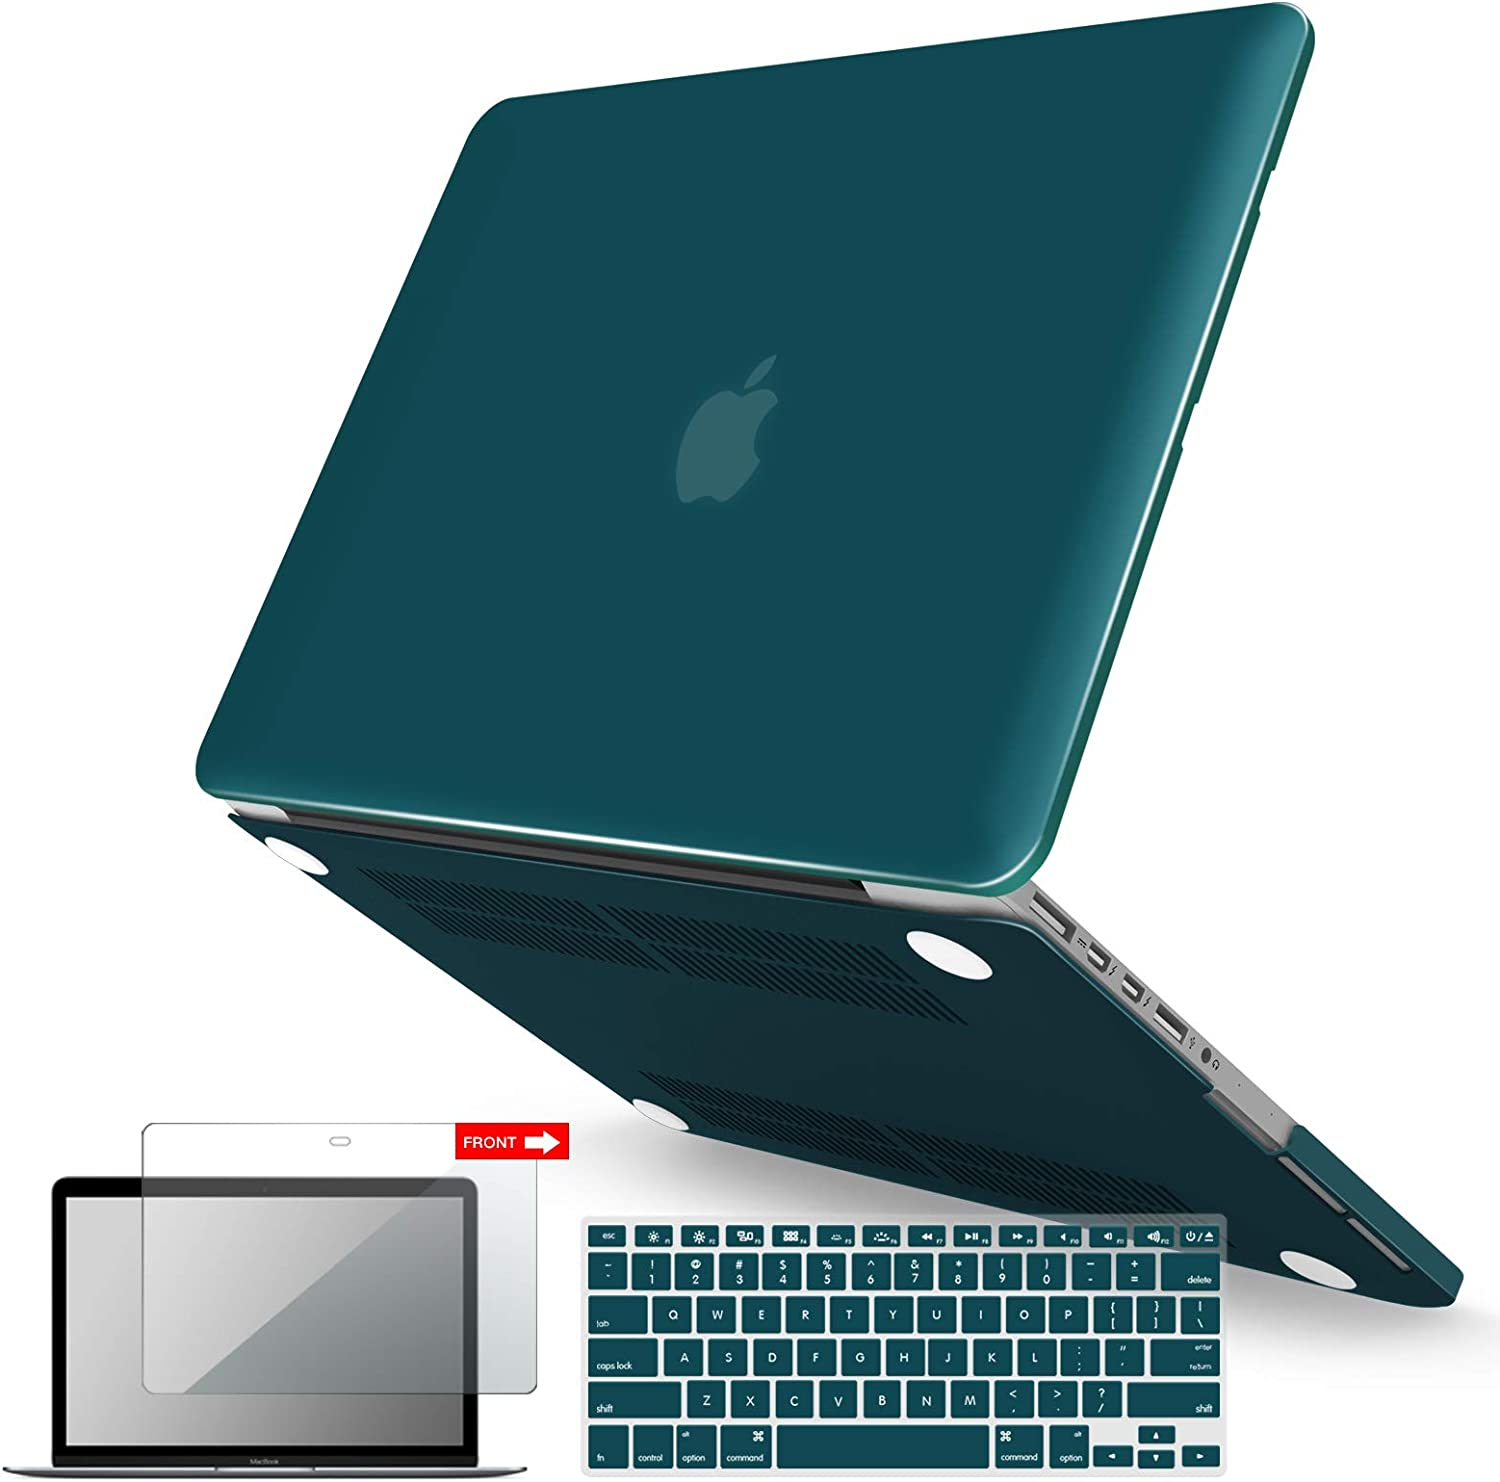 IBENZER MacBook Pro 13 Inch Case 2015 2014 2013 end 2012 A1502 A1425, Hard Shell Case with Keyboard Cover & Screen Protector for Old Version Apple Mac Pro Retina 13, Quetzal Green, R13QUGN+2